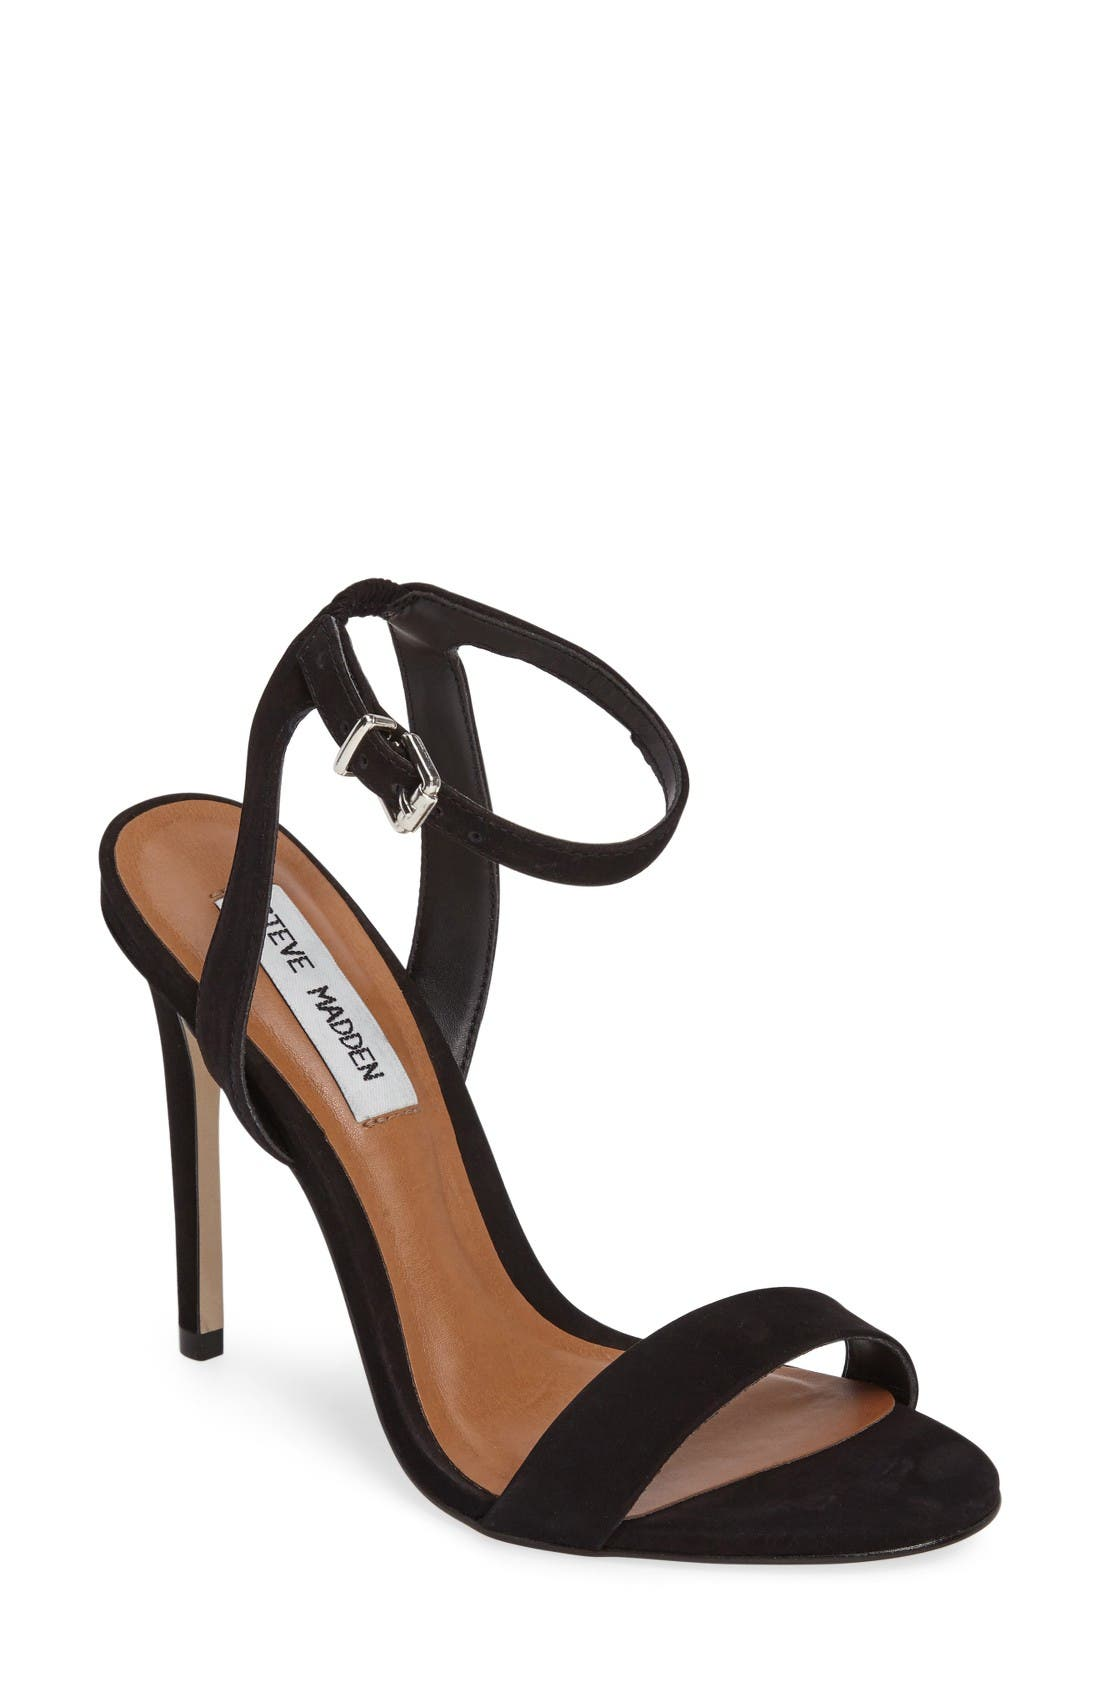 Alternate Image 1 Selected - Steve Madden Landen Ankle Strap Sandal (Women)